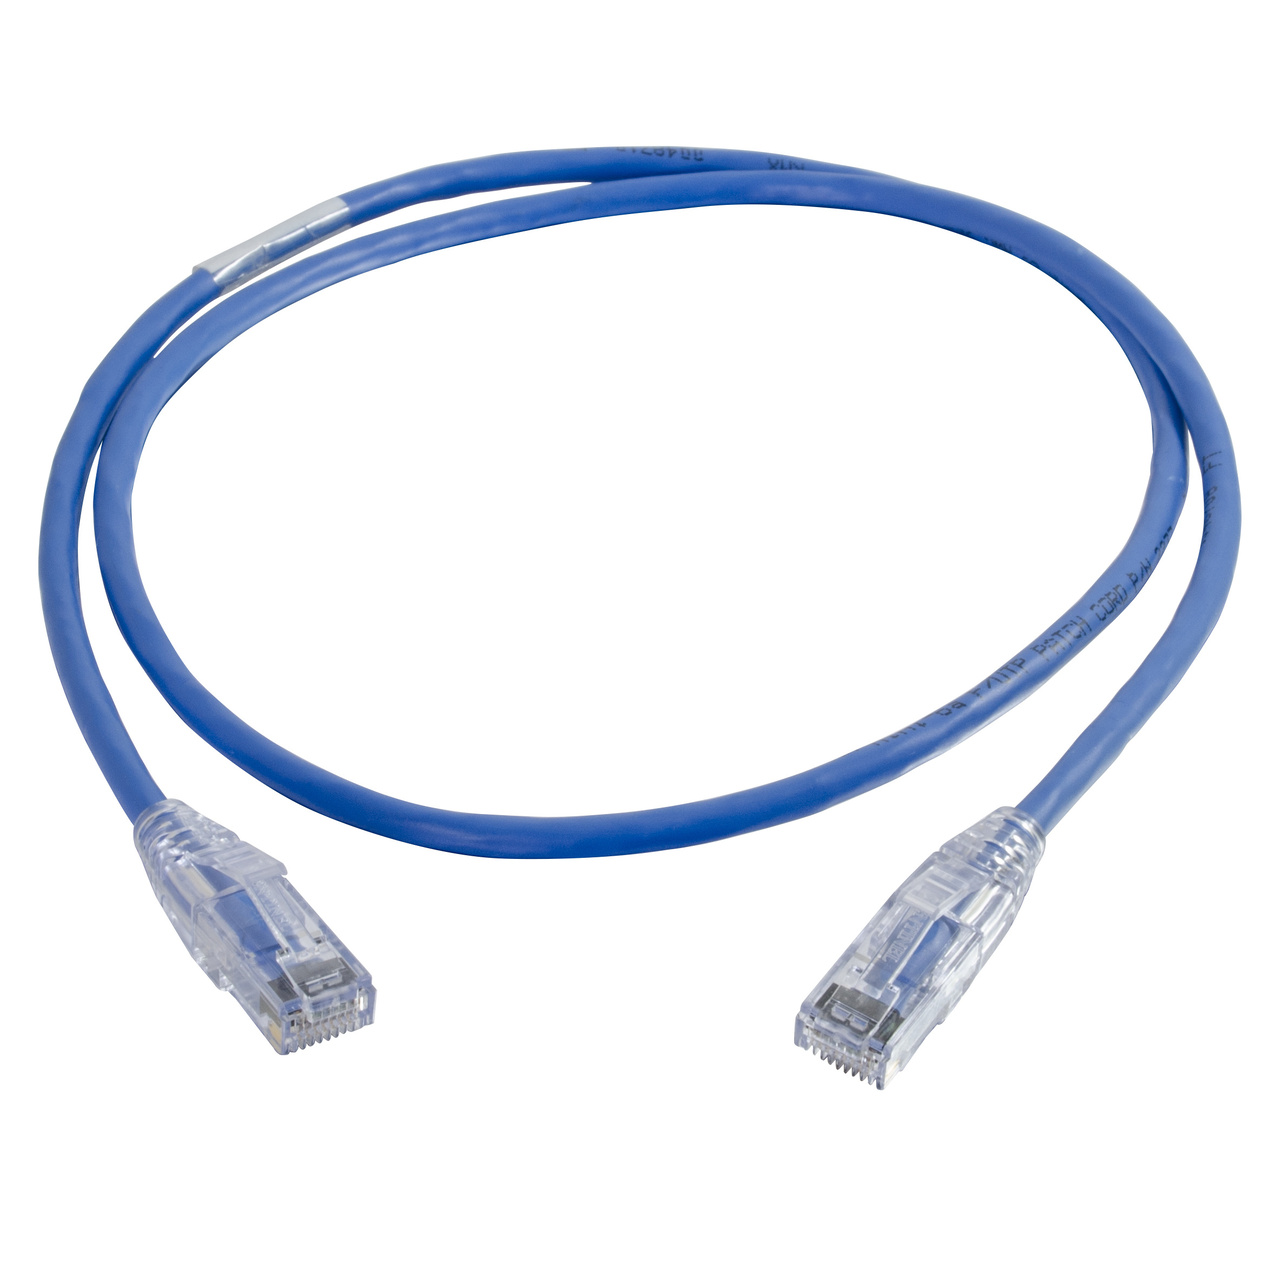 c6a 28 awg blue